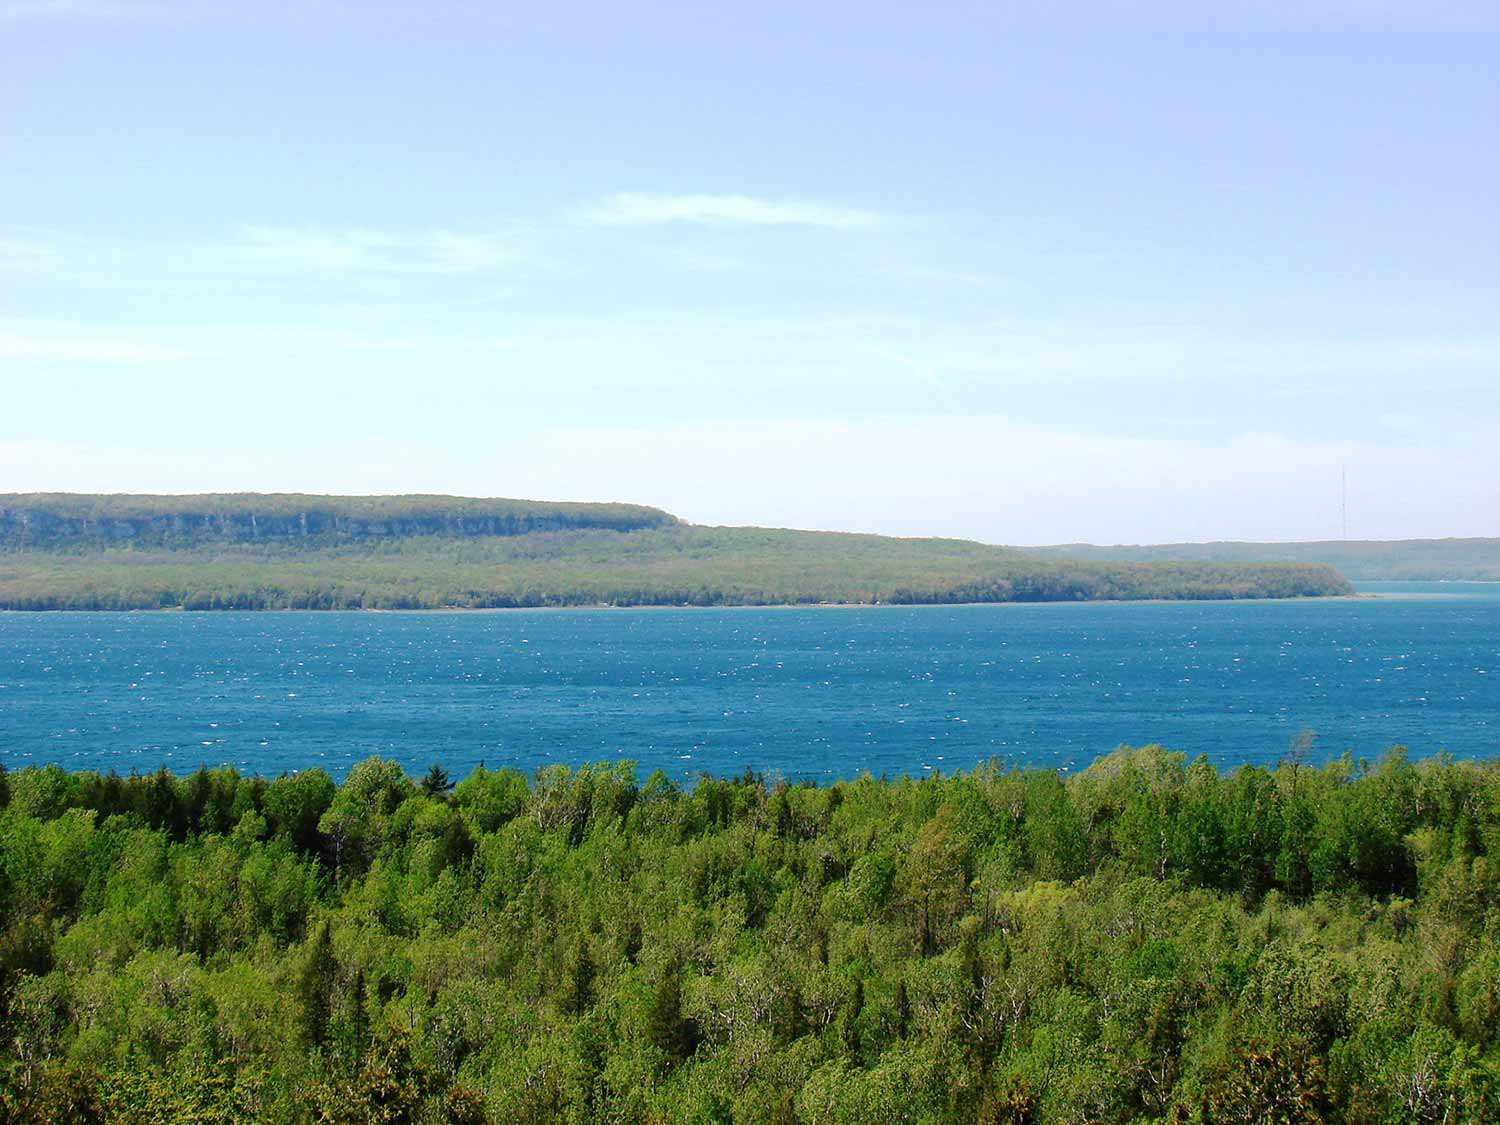 The Trust has created partnerships with Indigenous communities to protect sacred and culturally significant lands. (Hunter's Point)